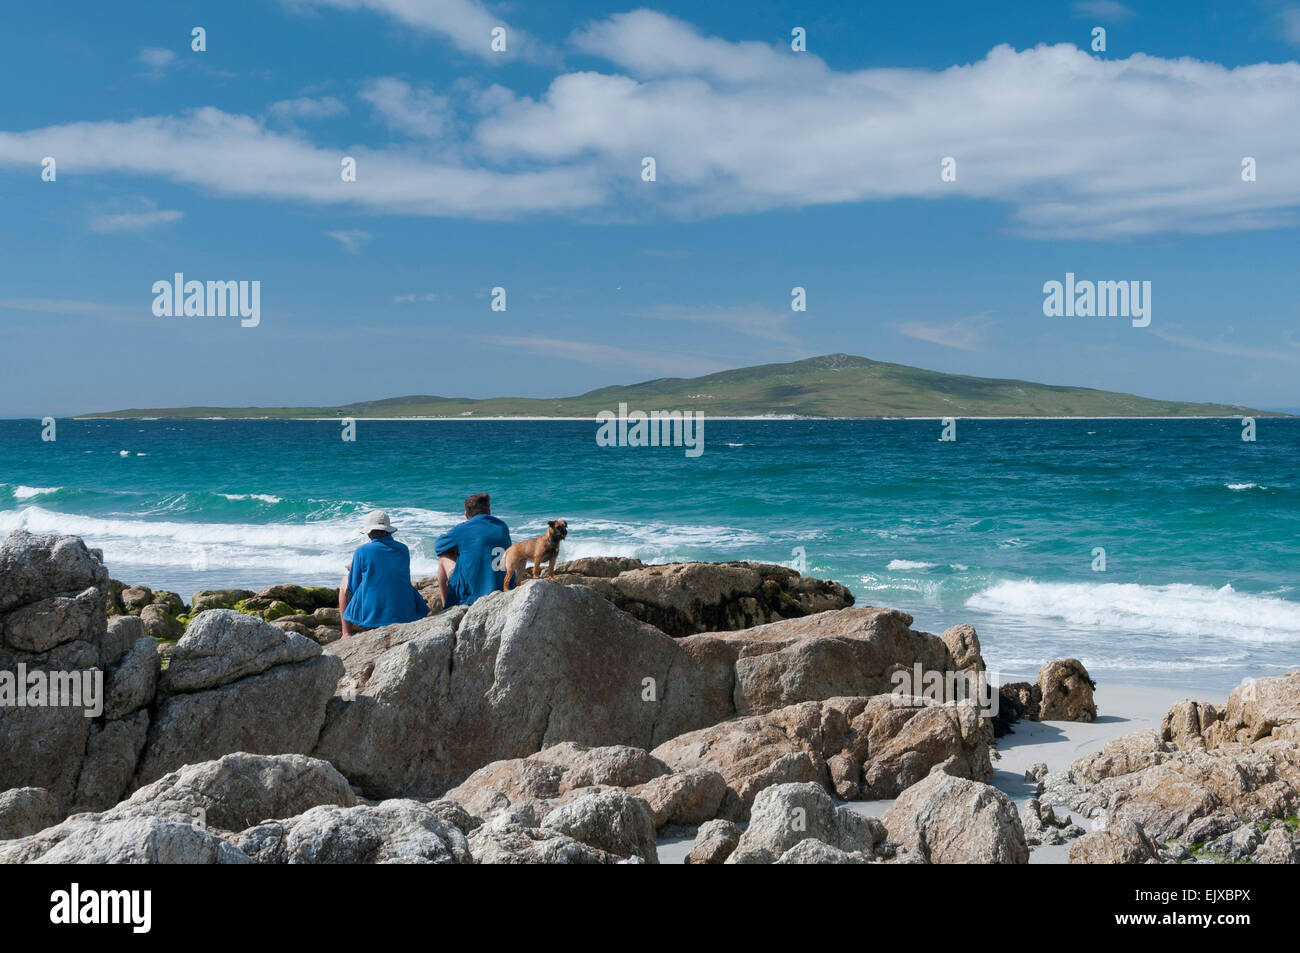 waves crashing at pabbay view with walkers / tourist relaxing with border terrier - Stock Image